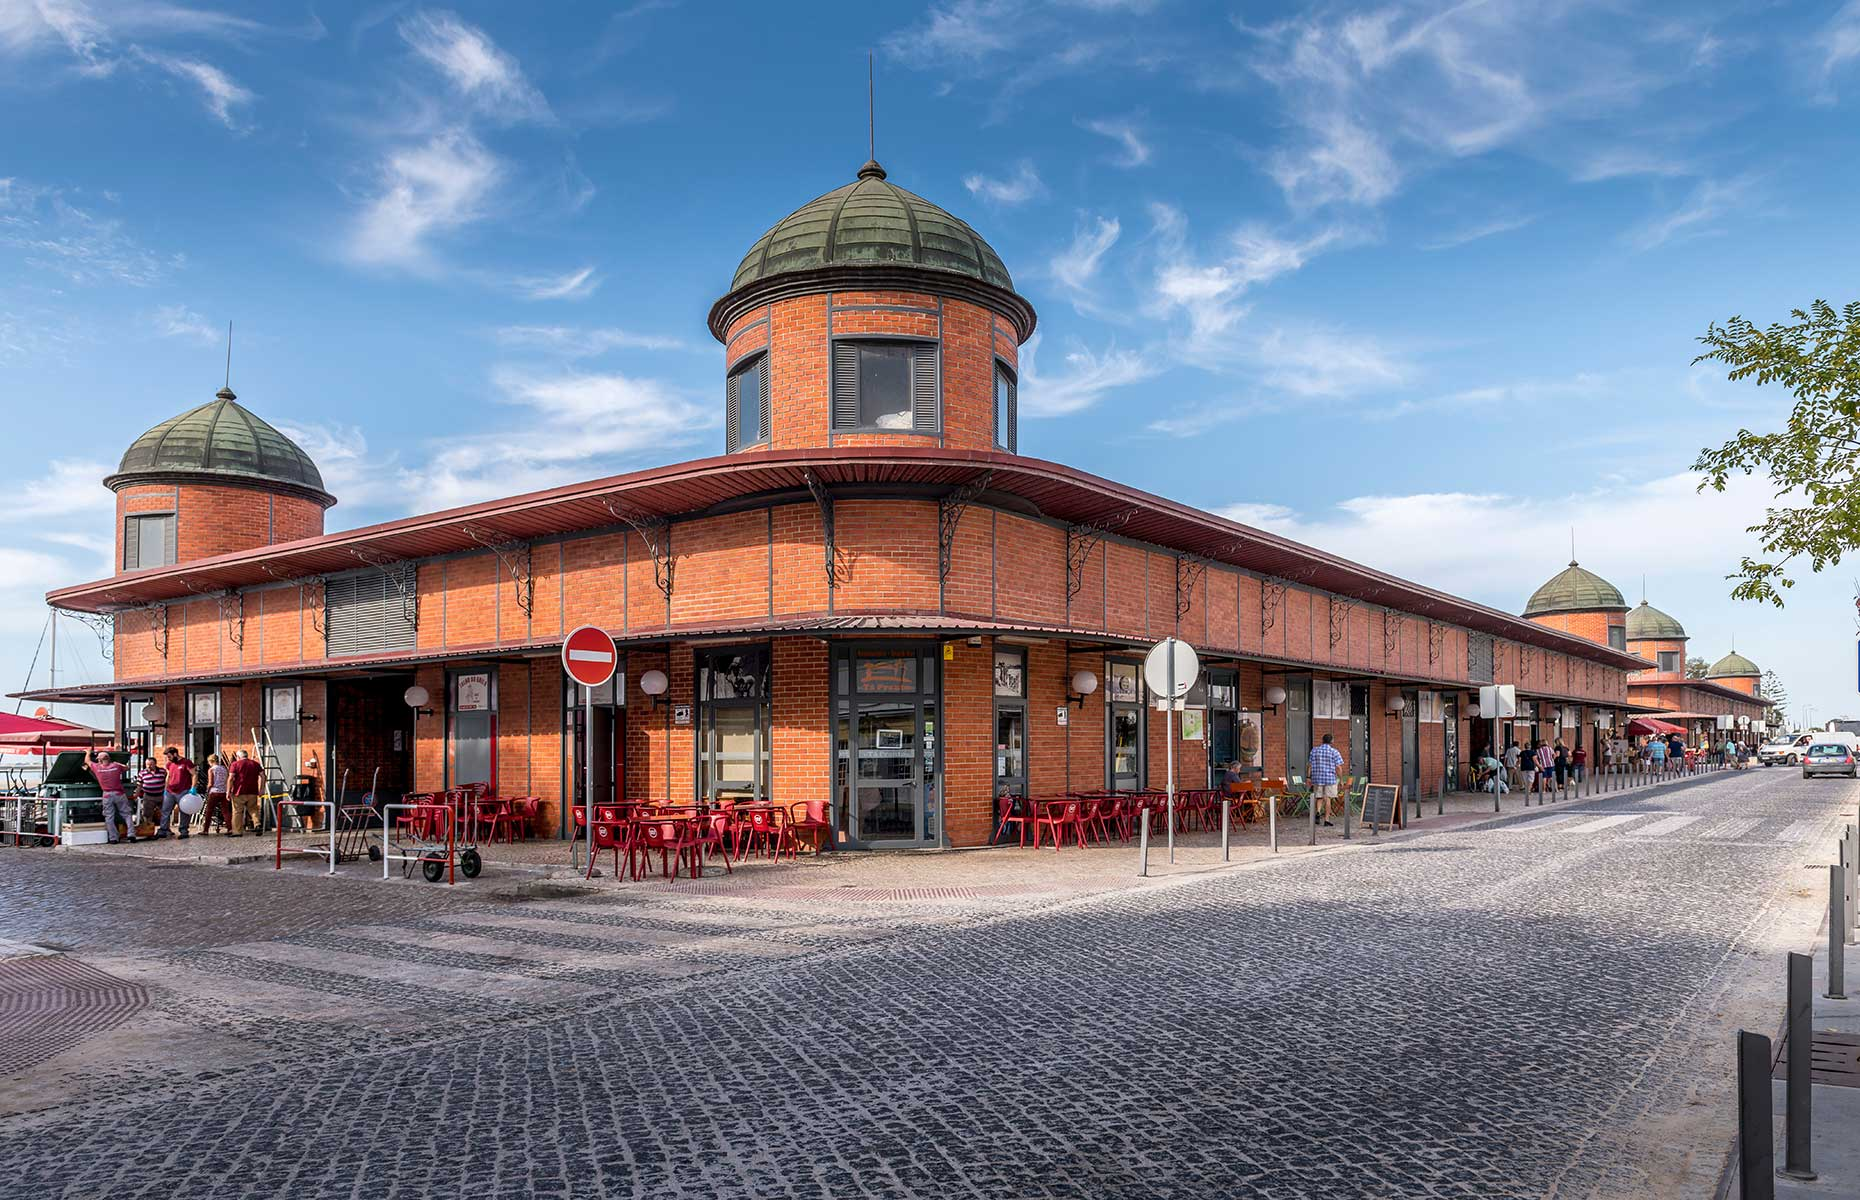 The fish market at Olhao (Image: Bob Deering/Shutterstock)